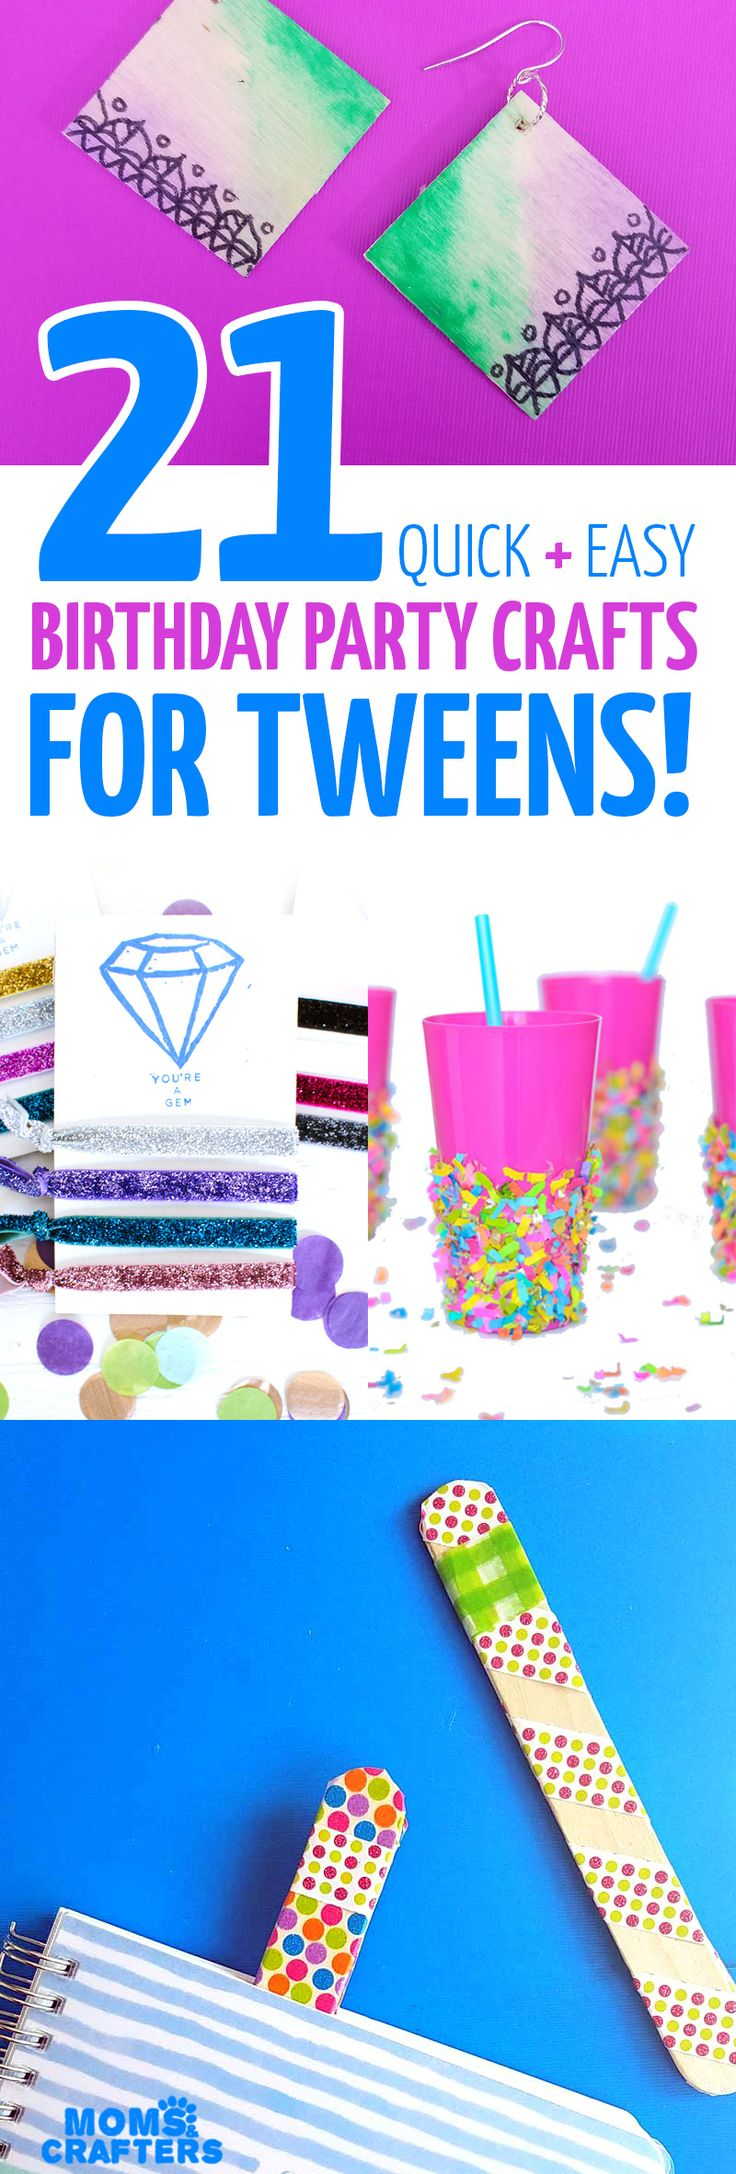 Try one of these cool birthday party crafts for tweens